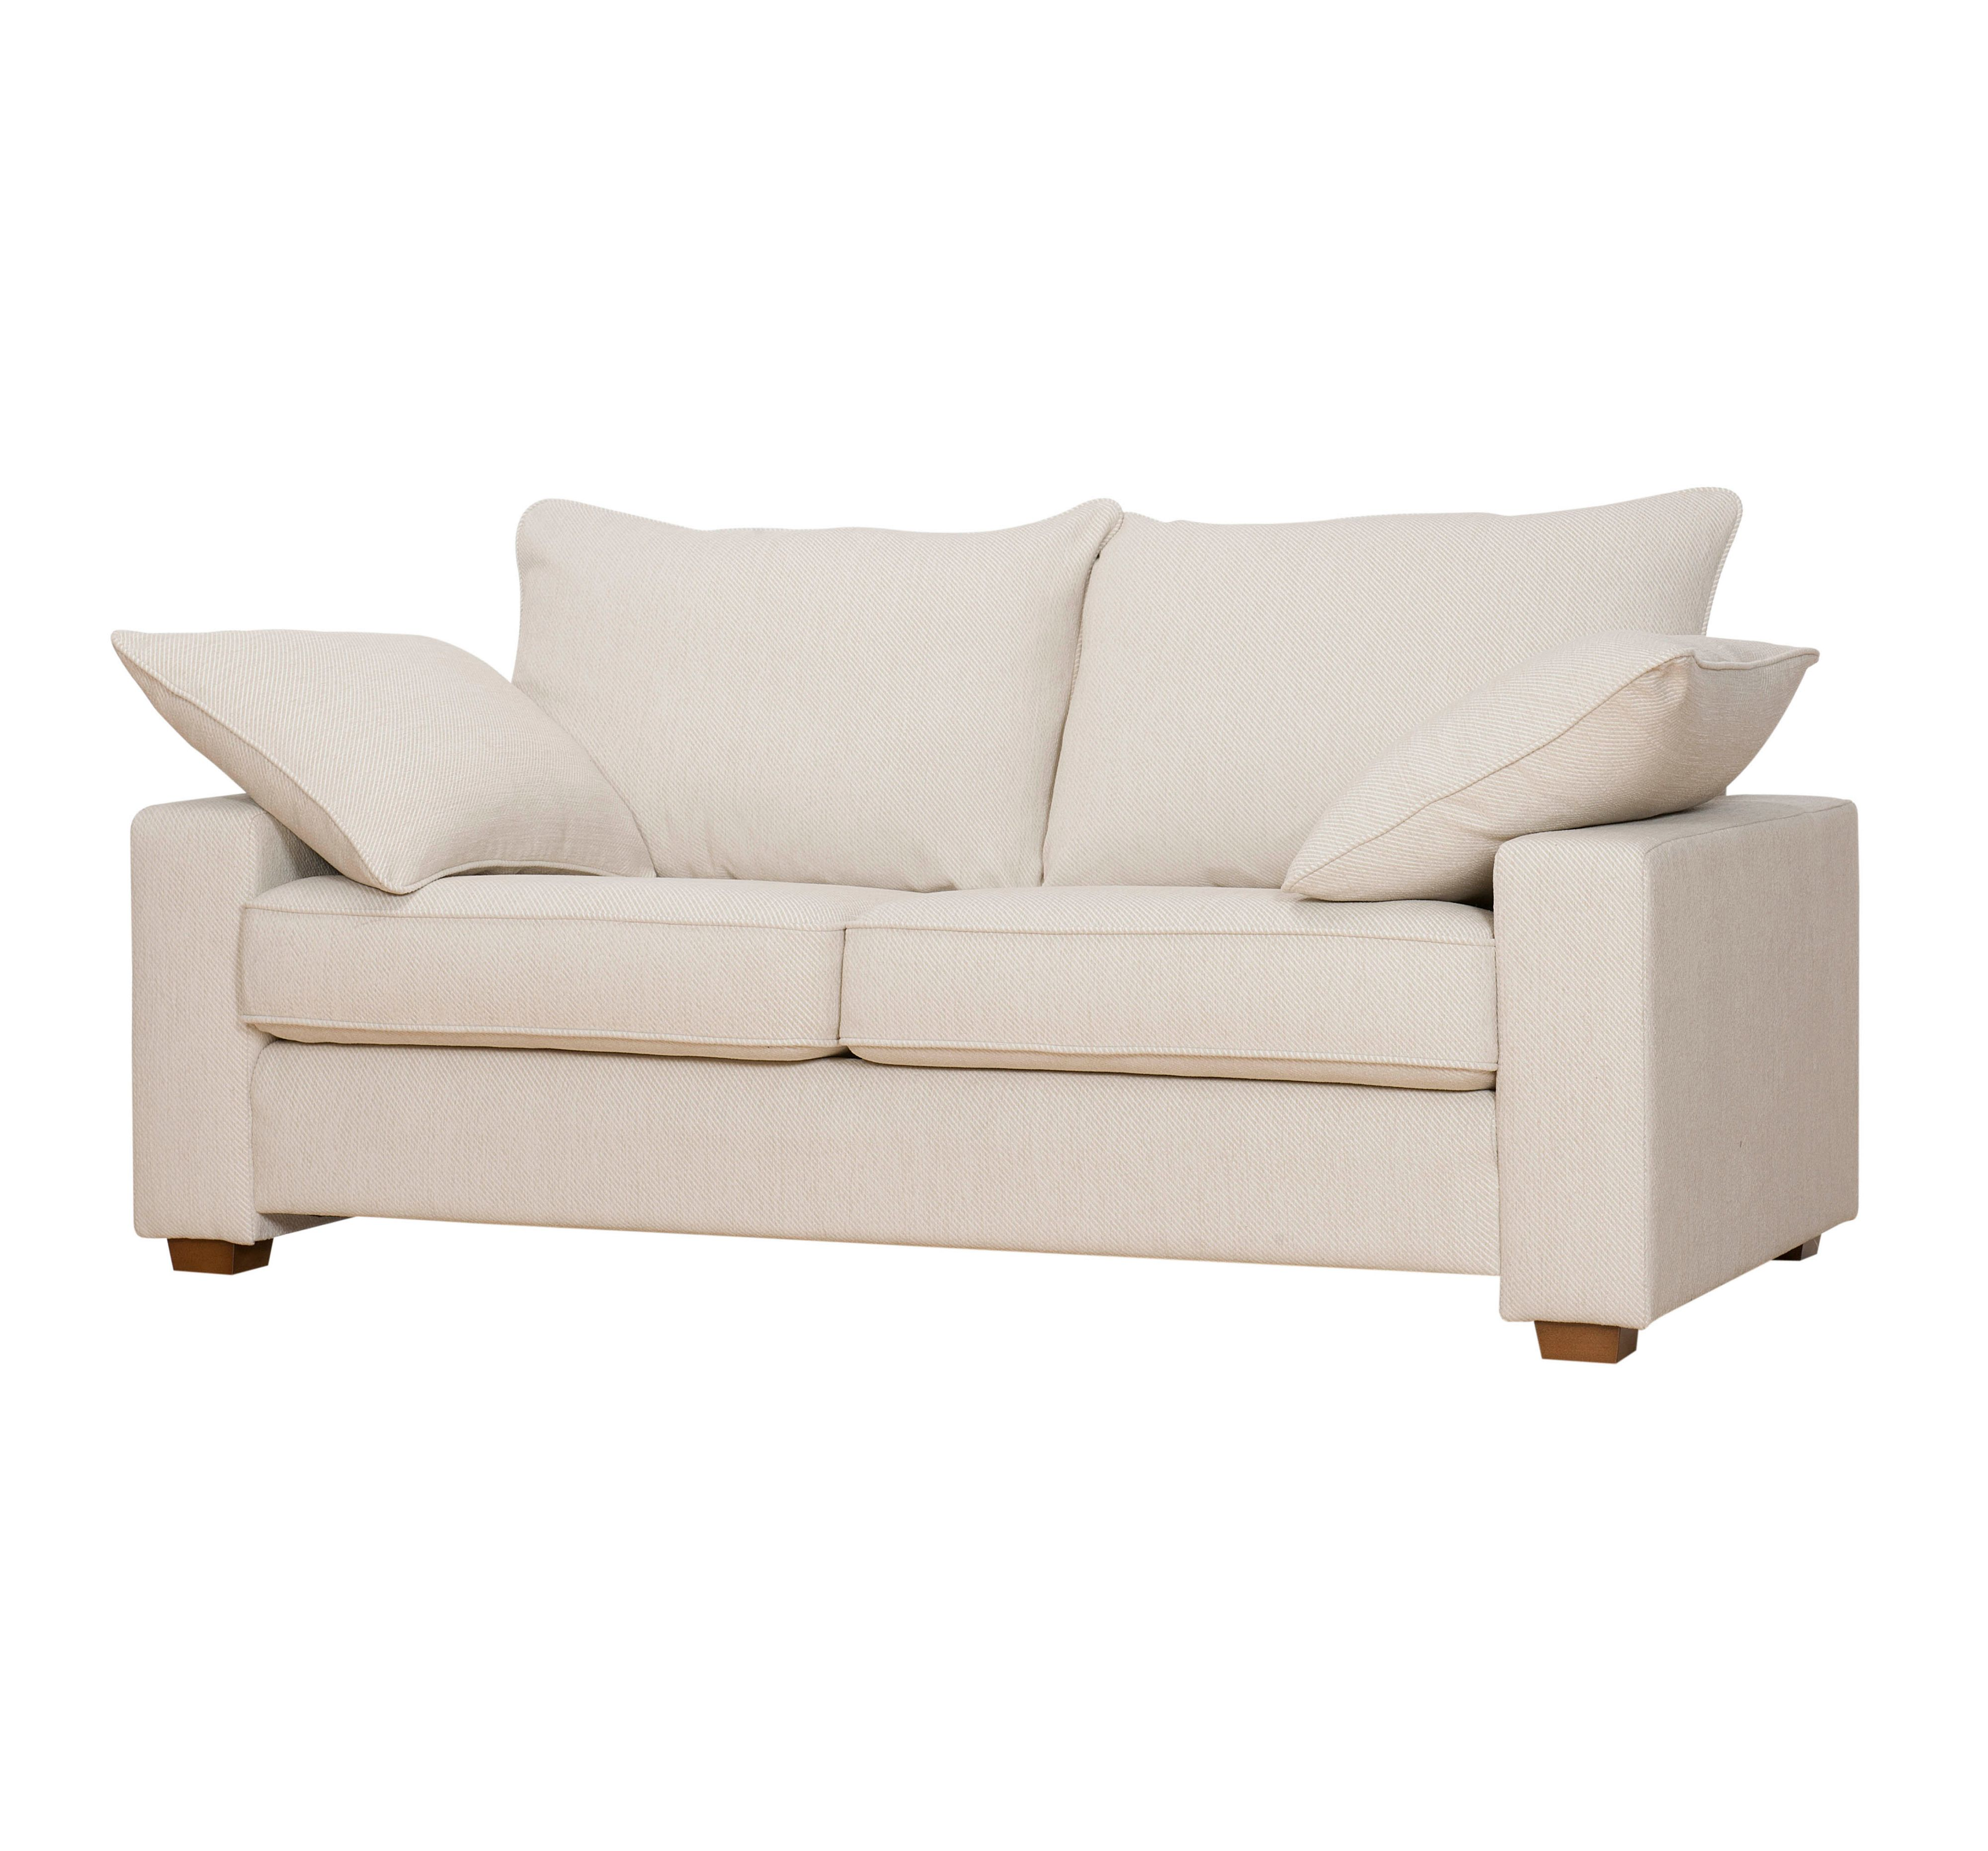 Petra medium sofa